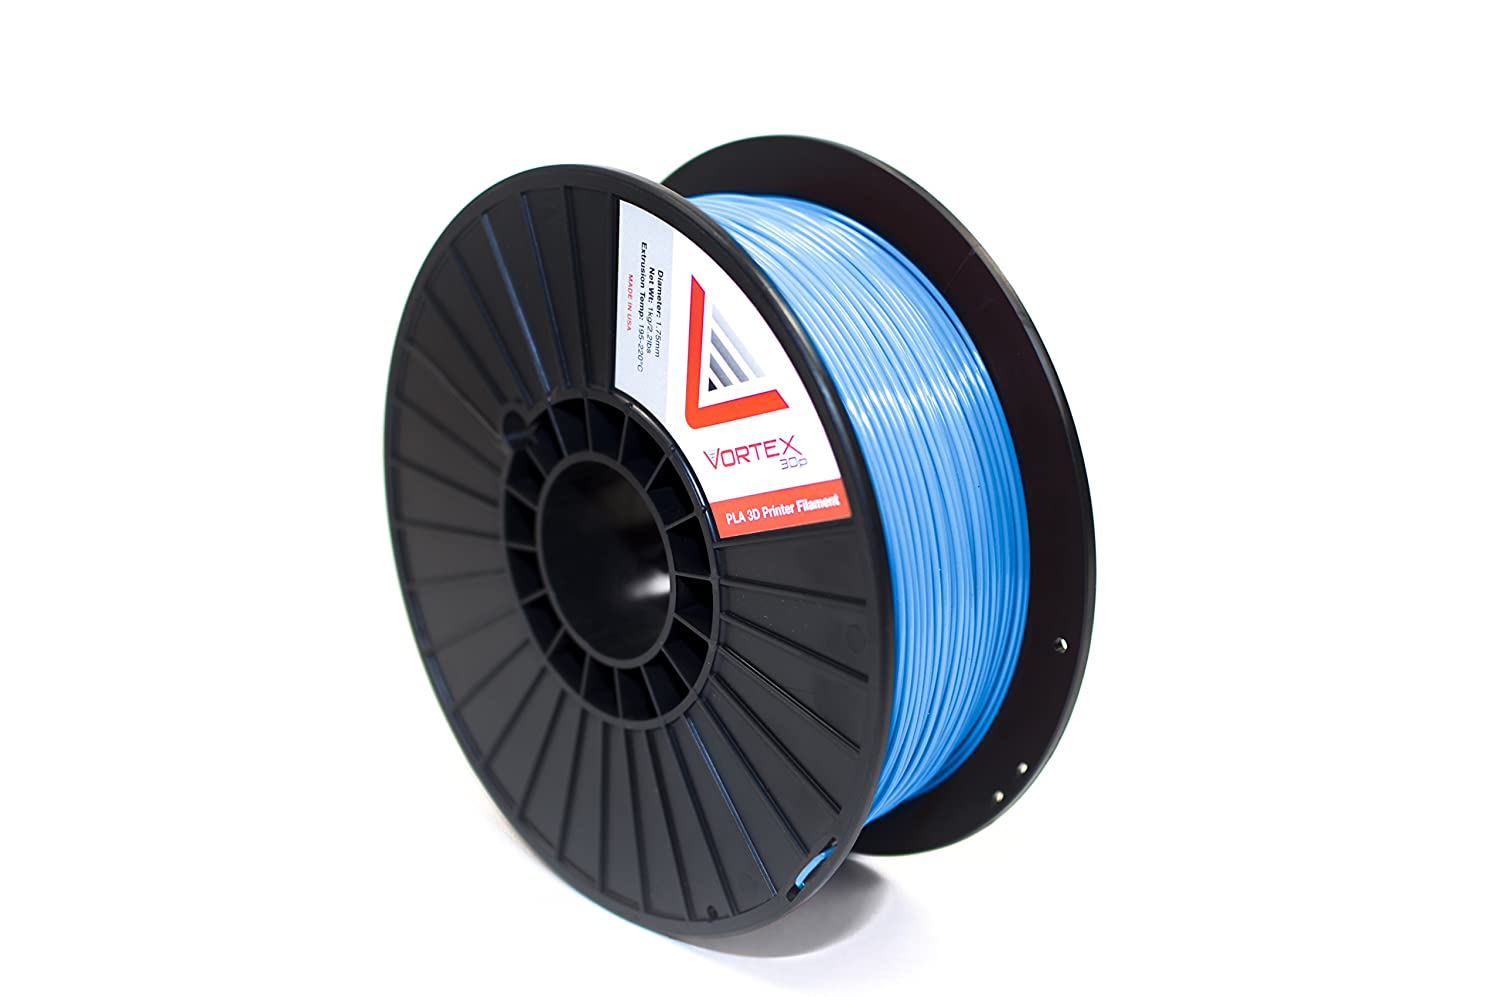 Vortex 3Dp Premium PLA Made in USA 1.75mm 3D Printer Filament 1kg/2.2lbs - Color: Baby Blue